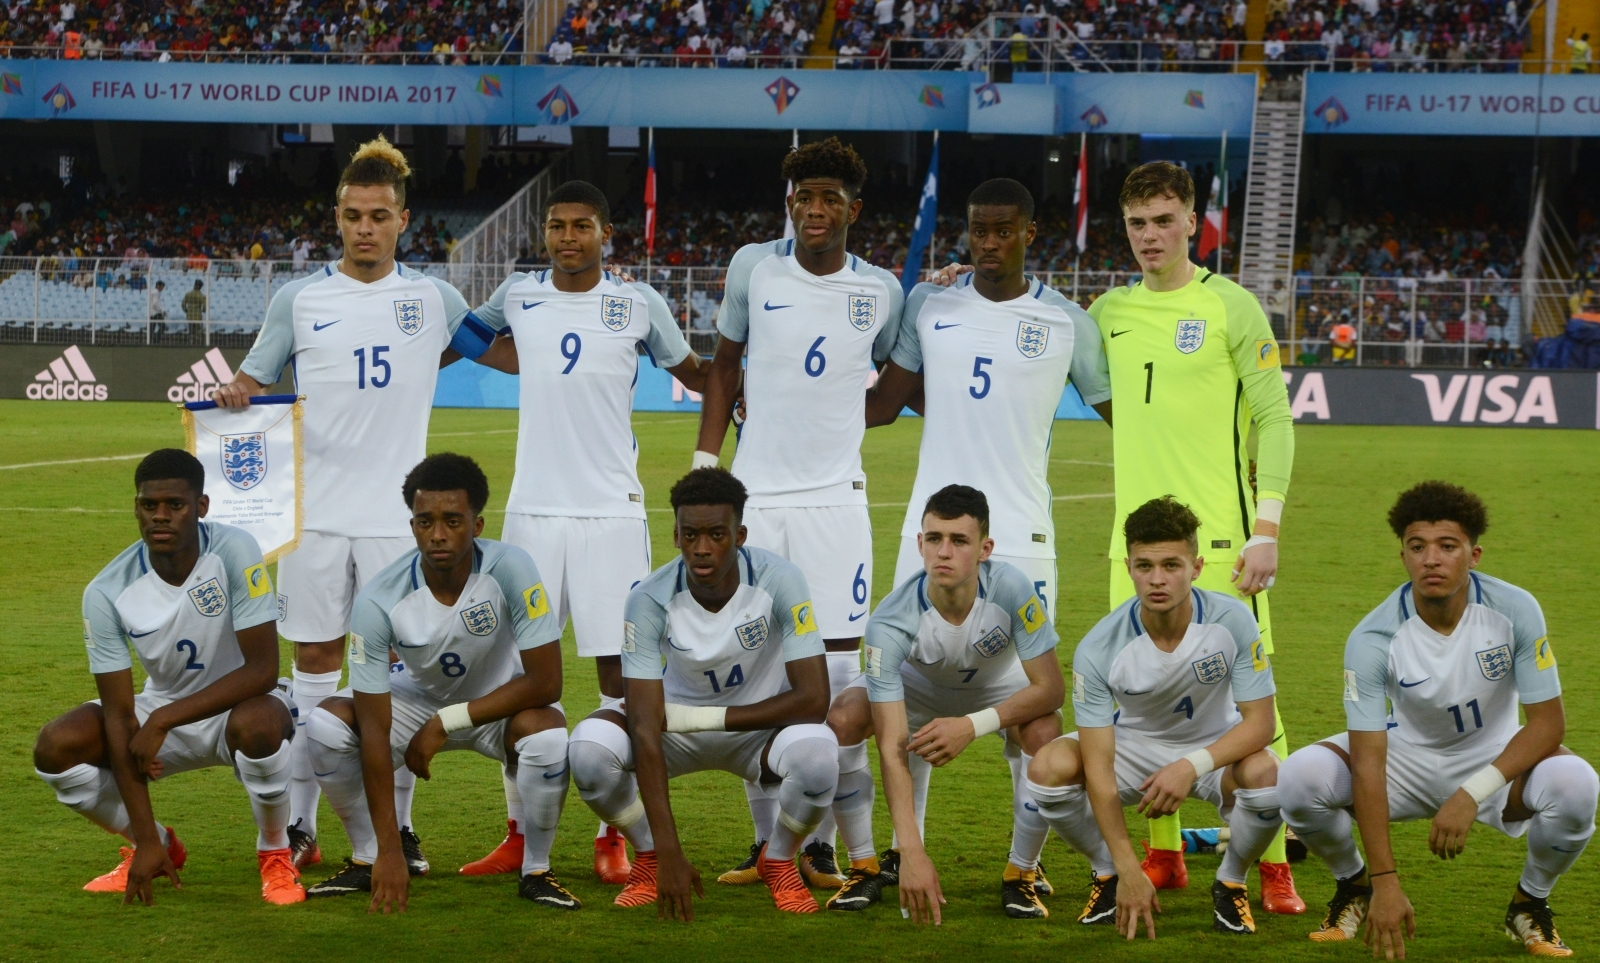 England's new wave of talent setting new standard once ...